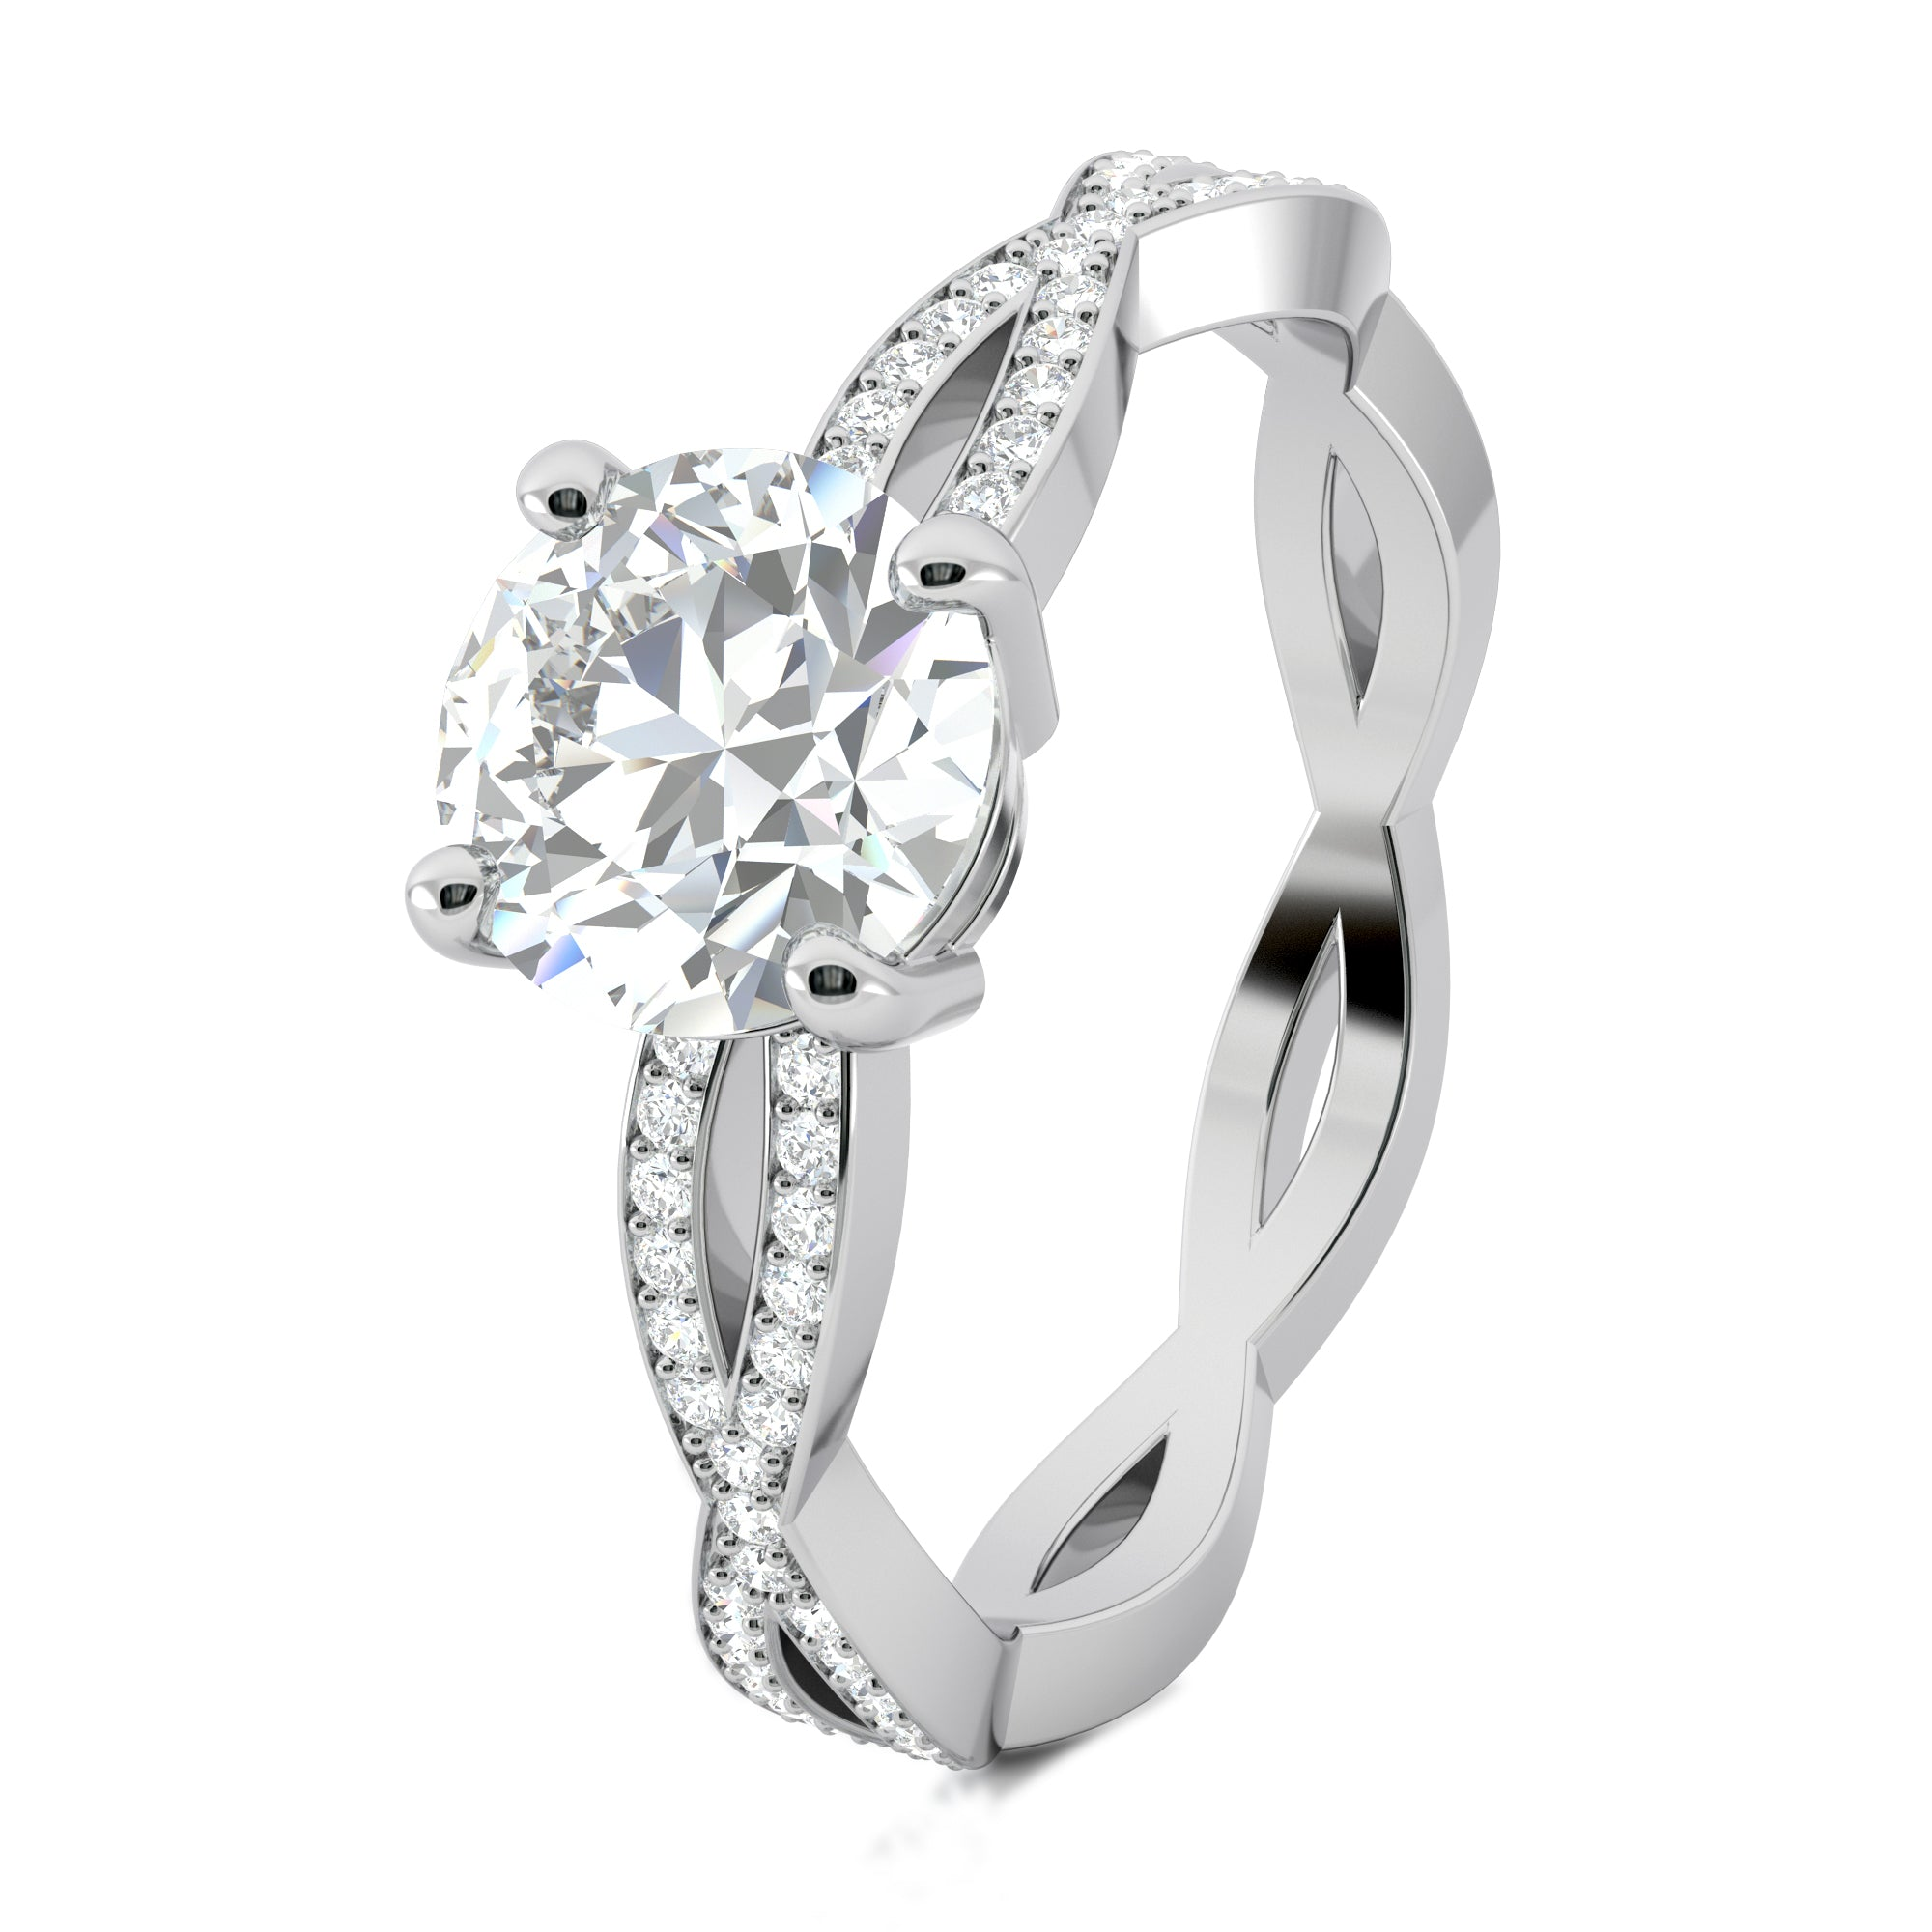 Bead setting engagement ring